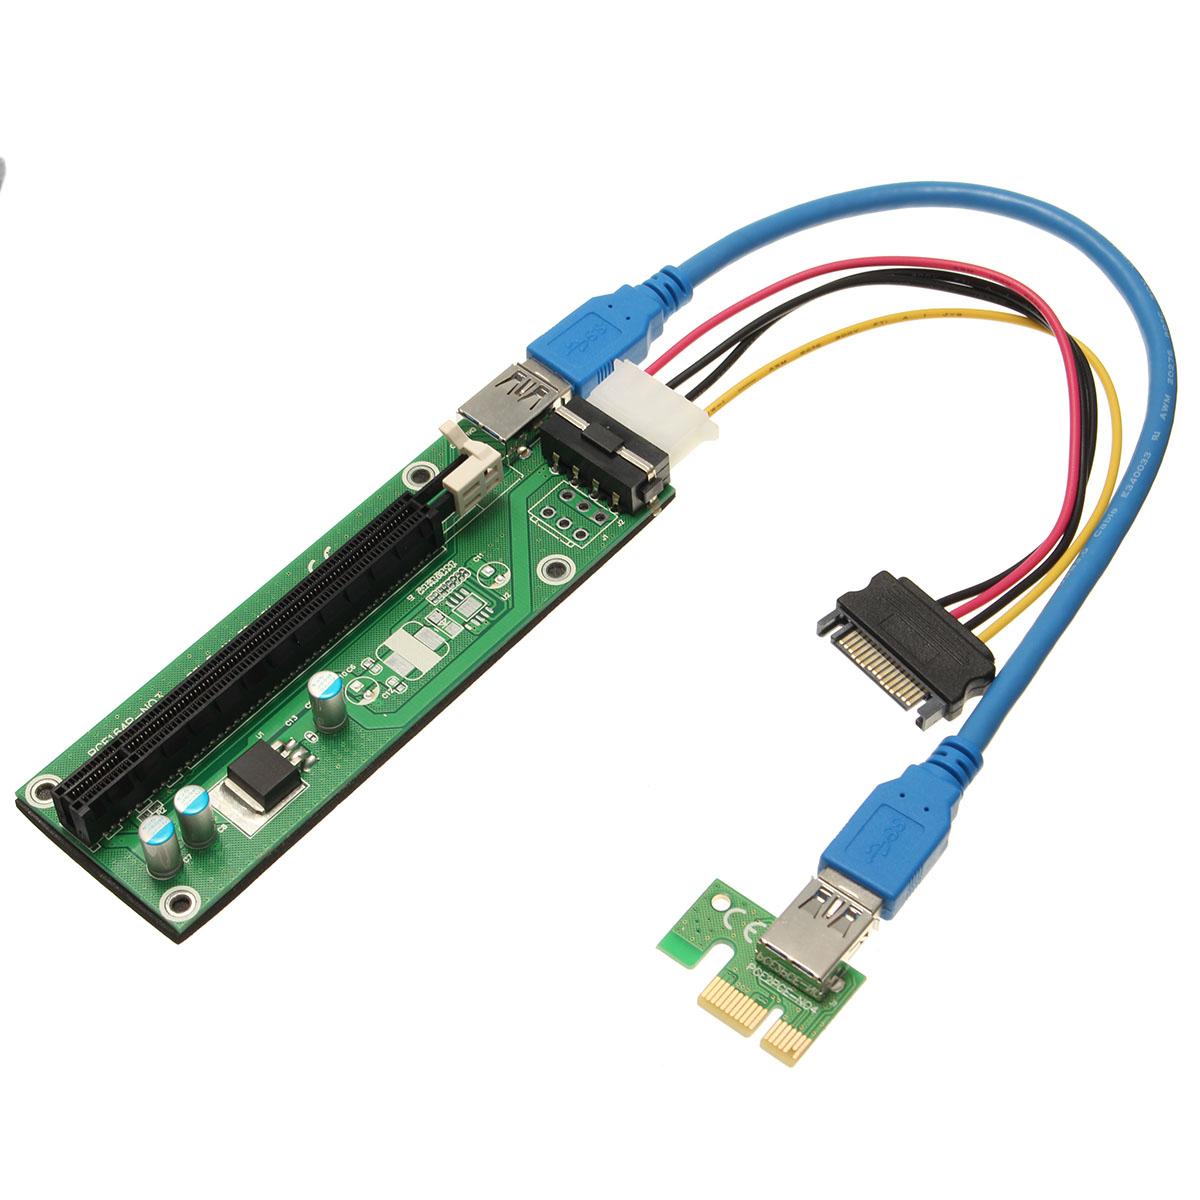 USB 3.0 PCI-E Express 1x to16x Extender Riser Board Card Adapter SATA Cable